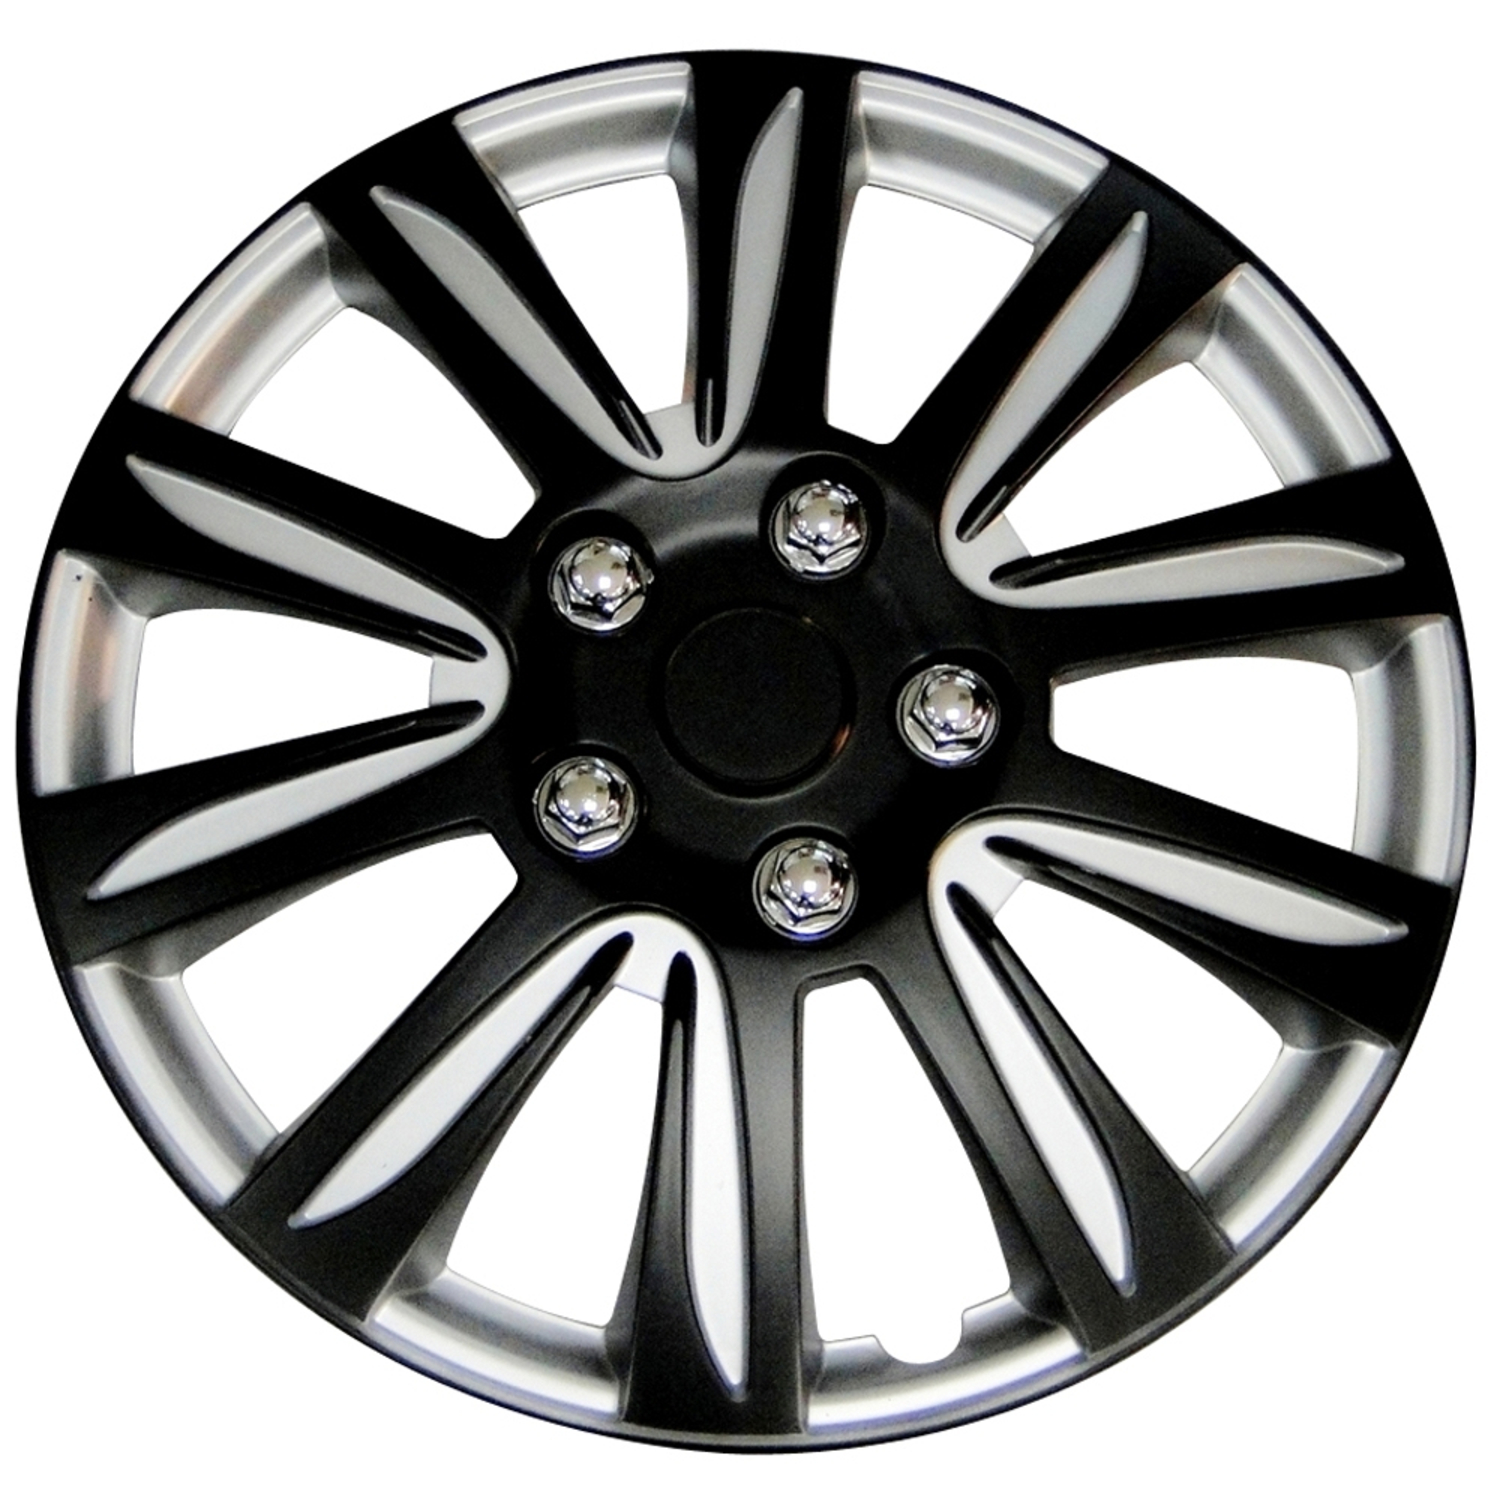 "Black 14"" Premier Wheel Cover, (Set of 4 covers) (WH546-14B-BS)"